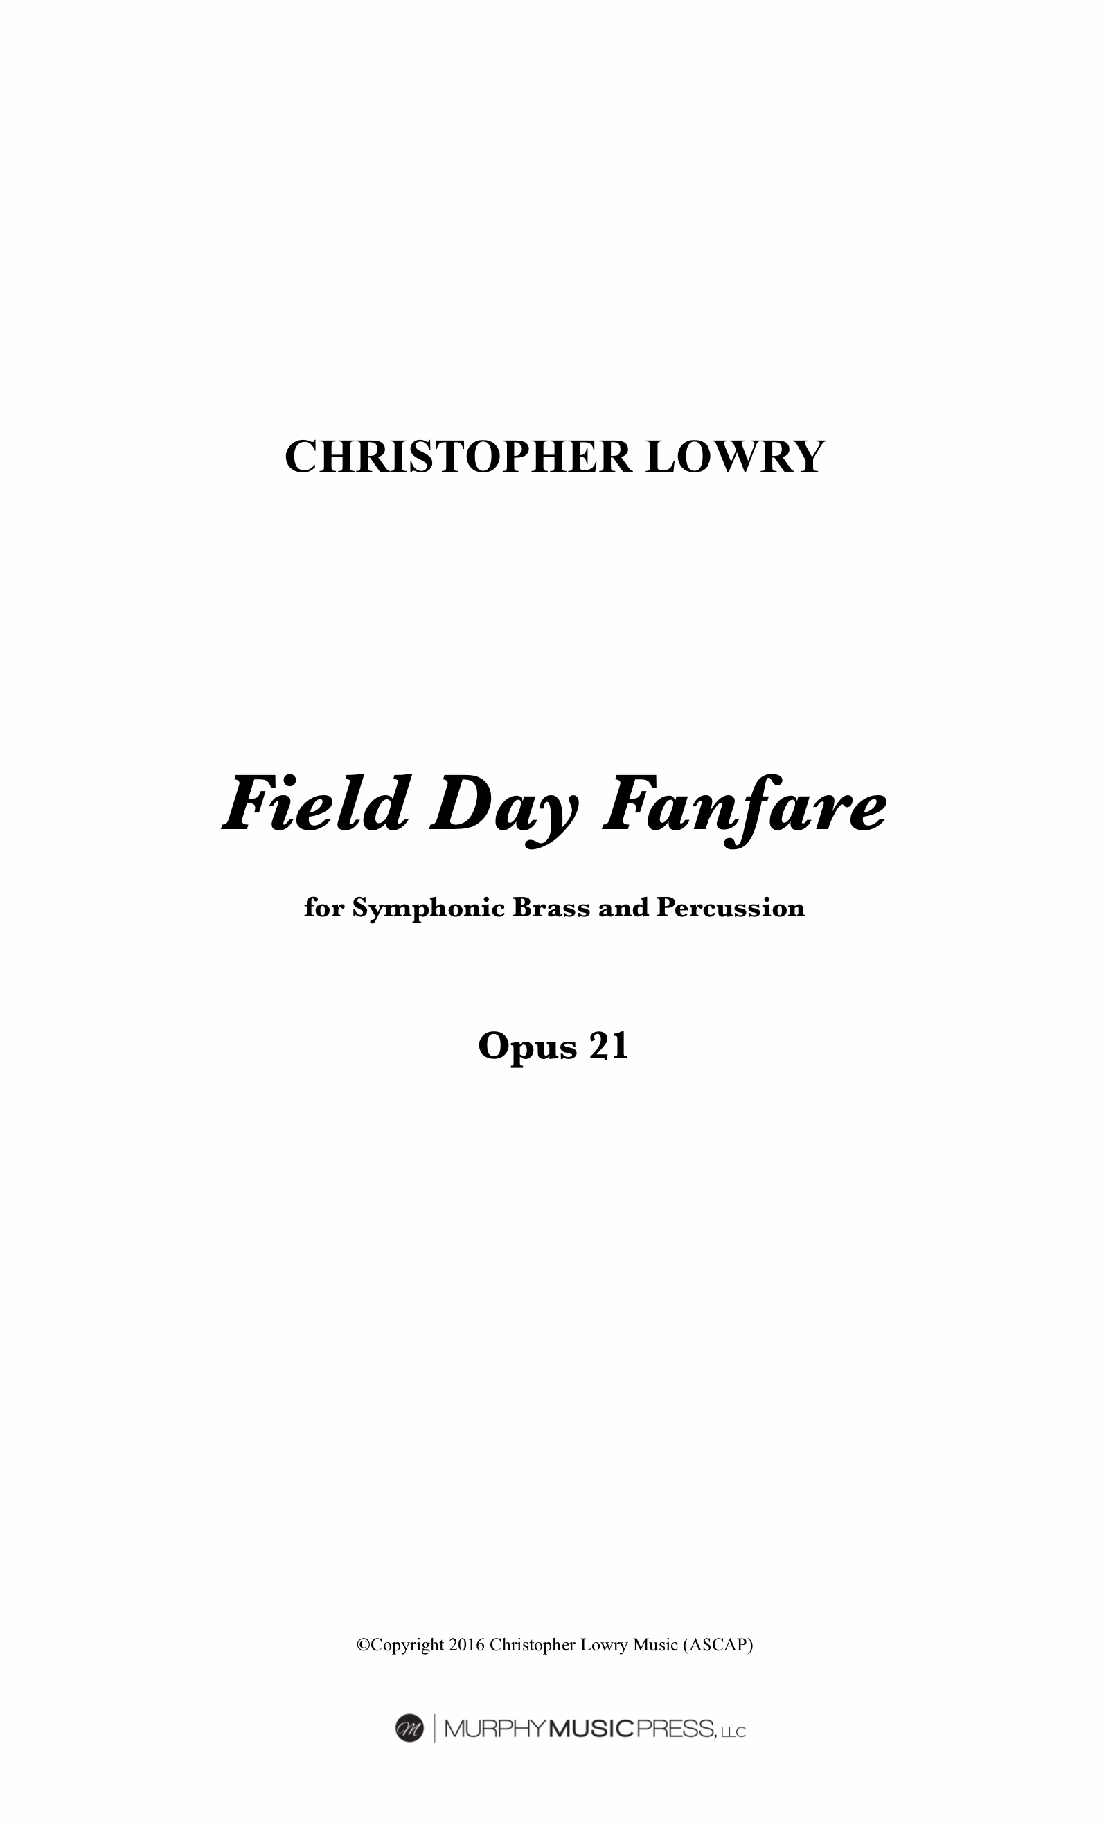 Field Day Fanfare by Christopher Lowry